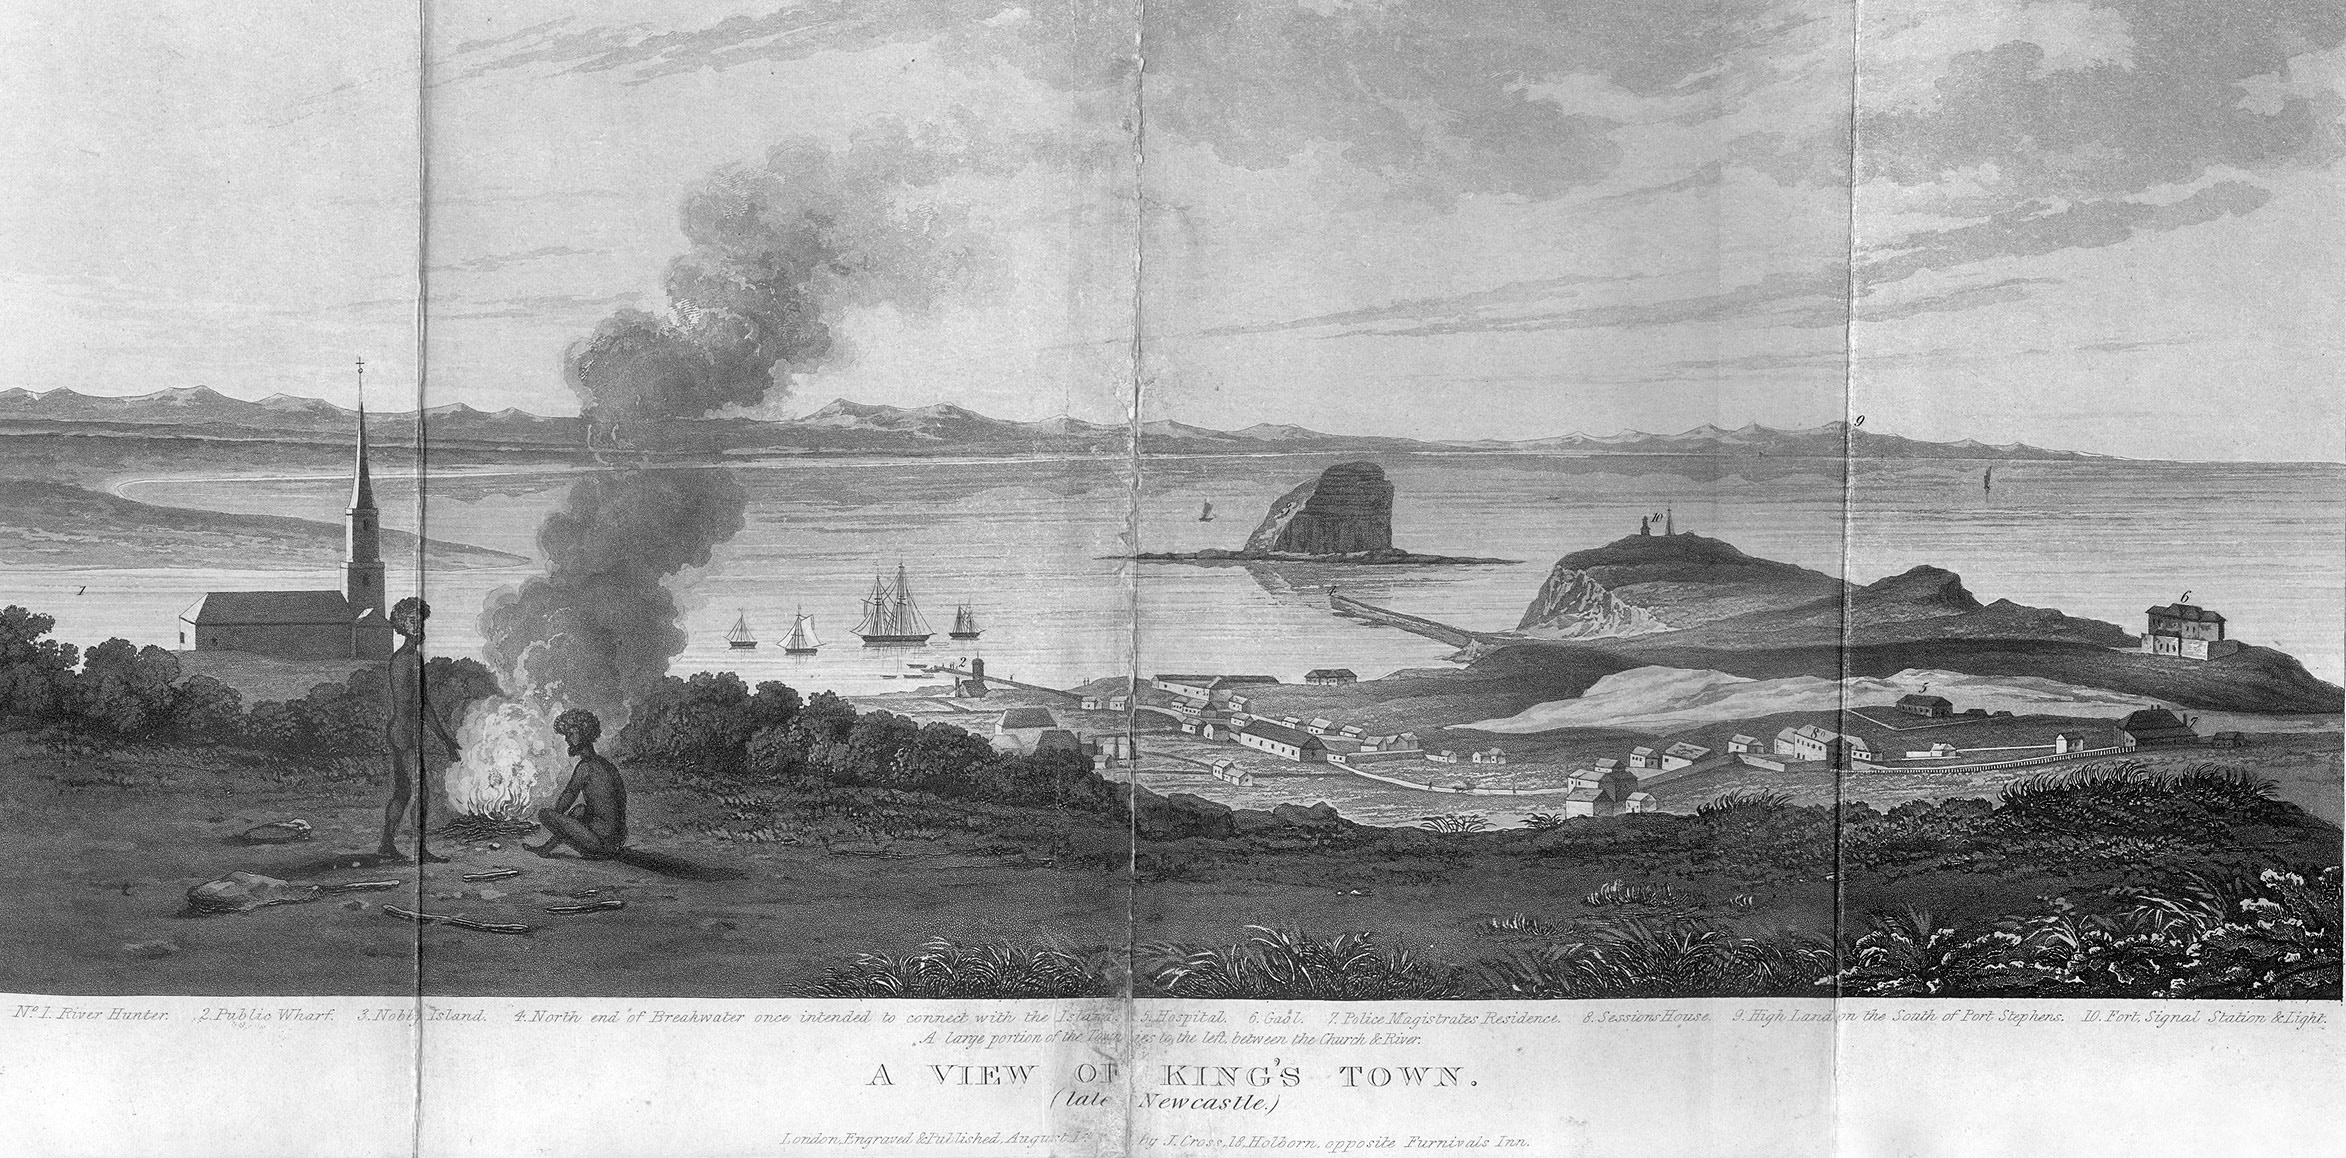 A View of King's Town (Late Newcastle) 1828